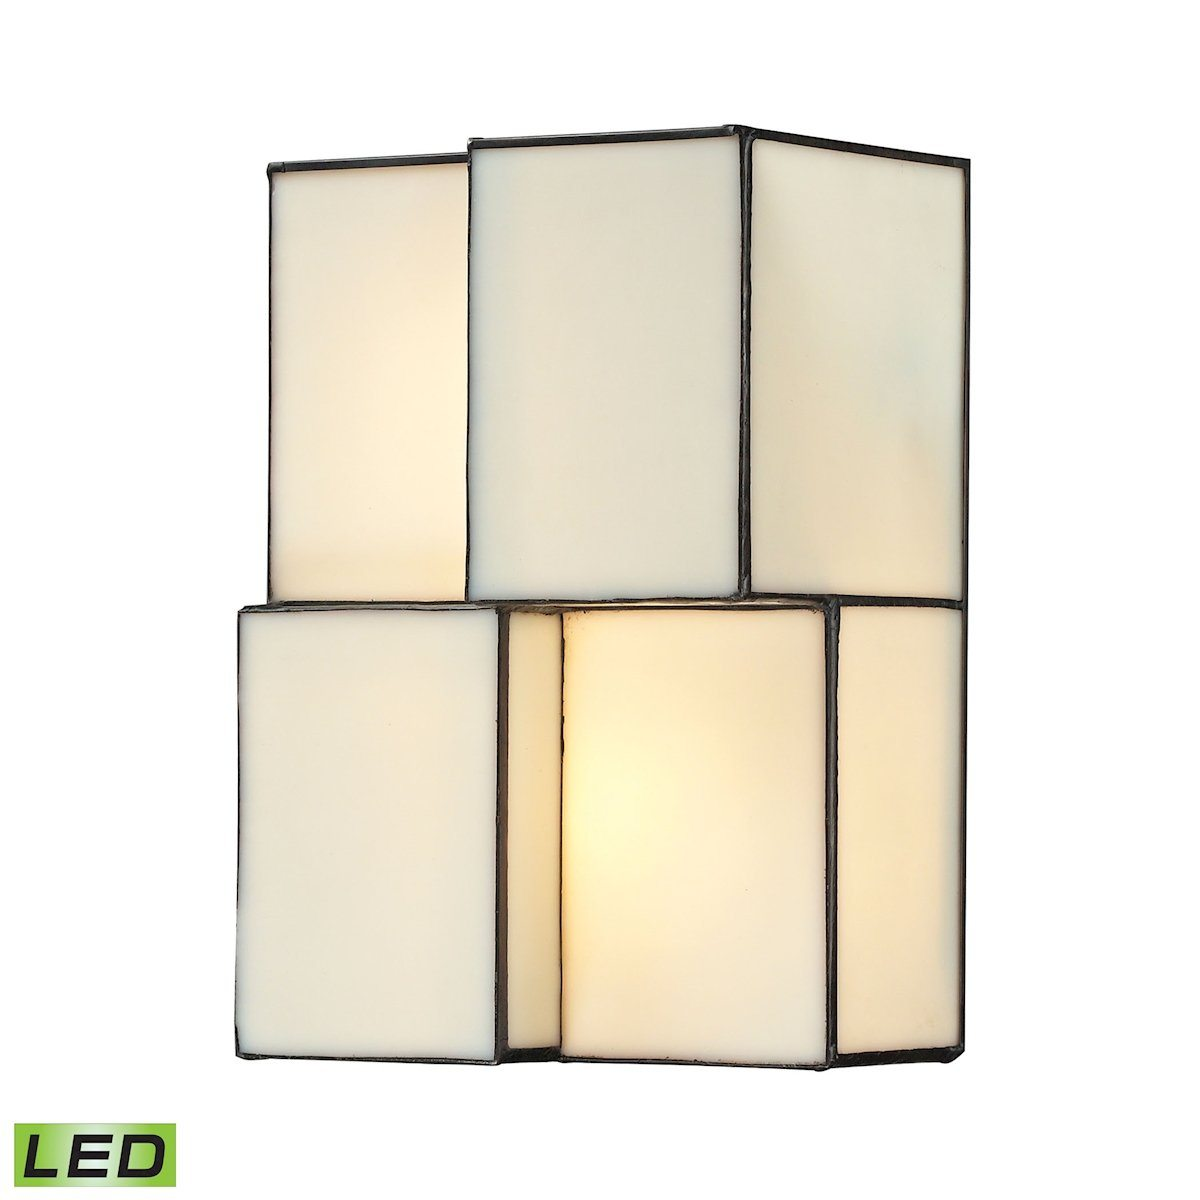 Cubist 2 Light LED Wall Sconce In Brushed Nickel Wall Sconce Elk Lighting